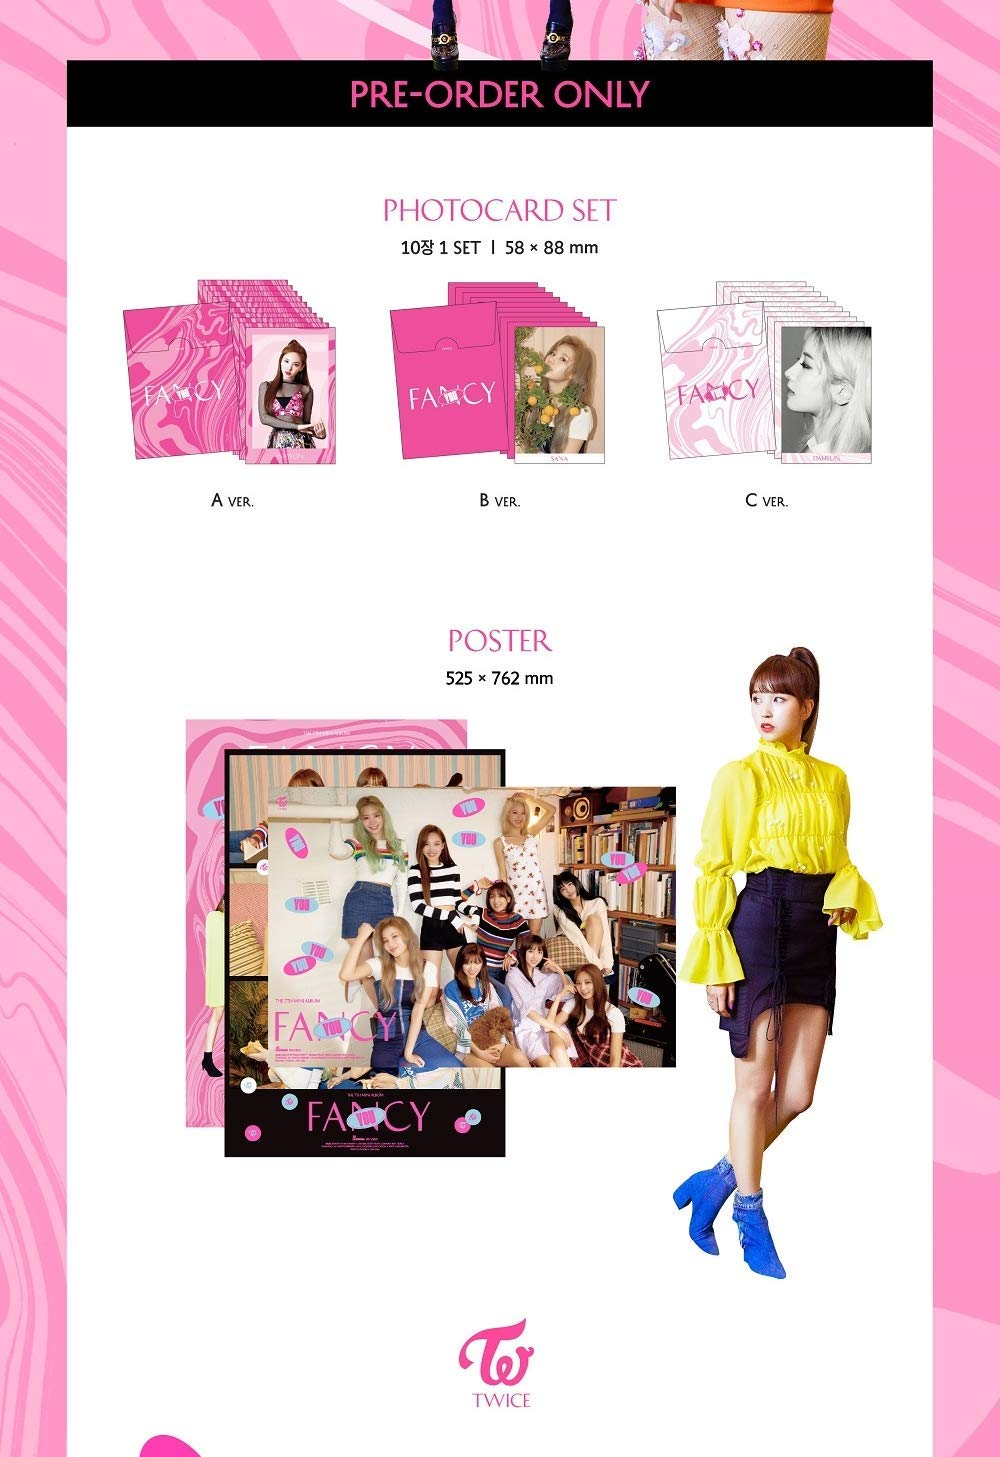 K-POP Twice - 7th Mini Album [Fancy You] (B version) CD + Sticker + Photocards + Photobook + Pre-Order Benefit + Folded Poster + Extra Photocards Set + Tracking Number KPOP Sealed by JYP Ent